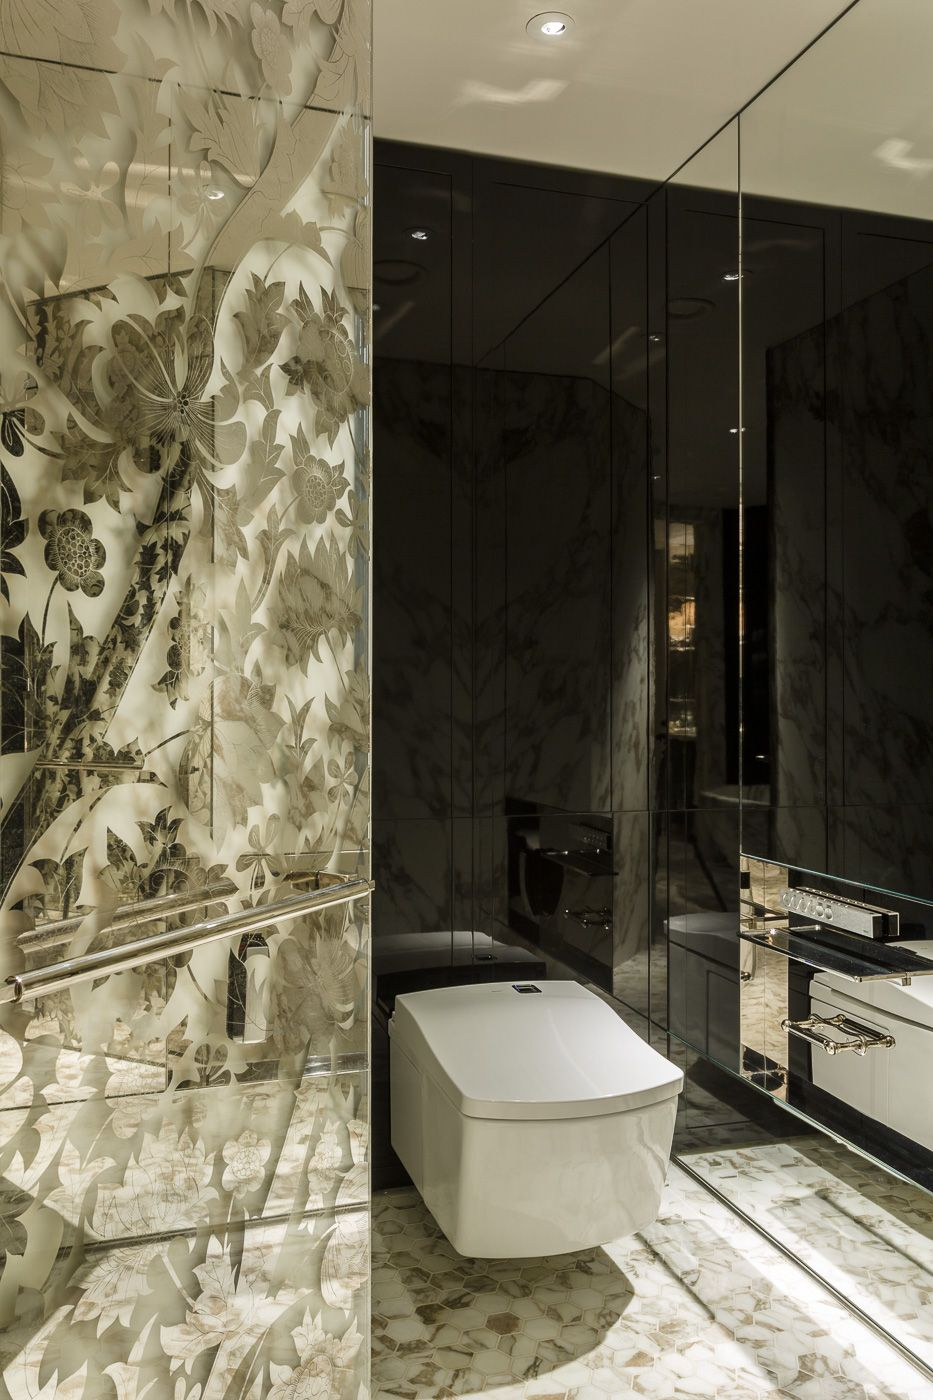 stunning marble bathroom at the rosewood hotel london, featuring a